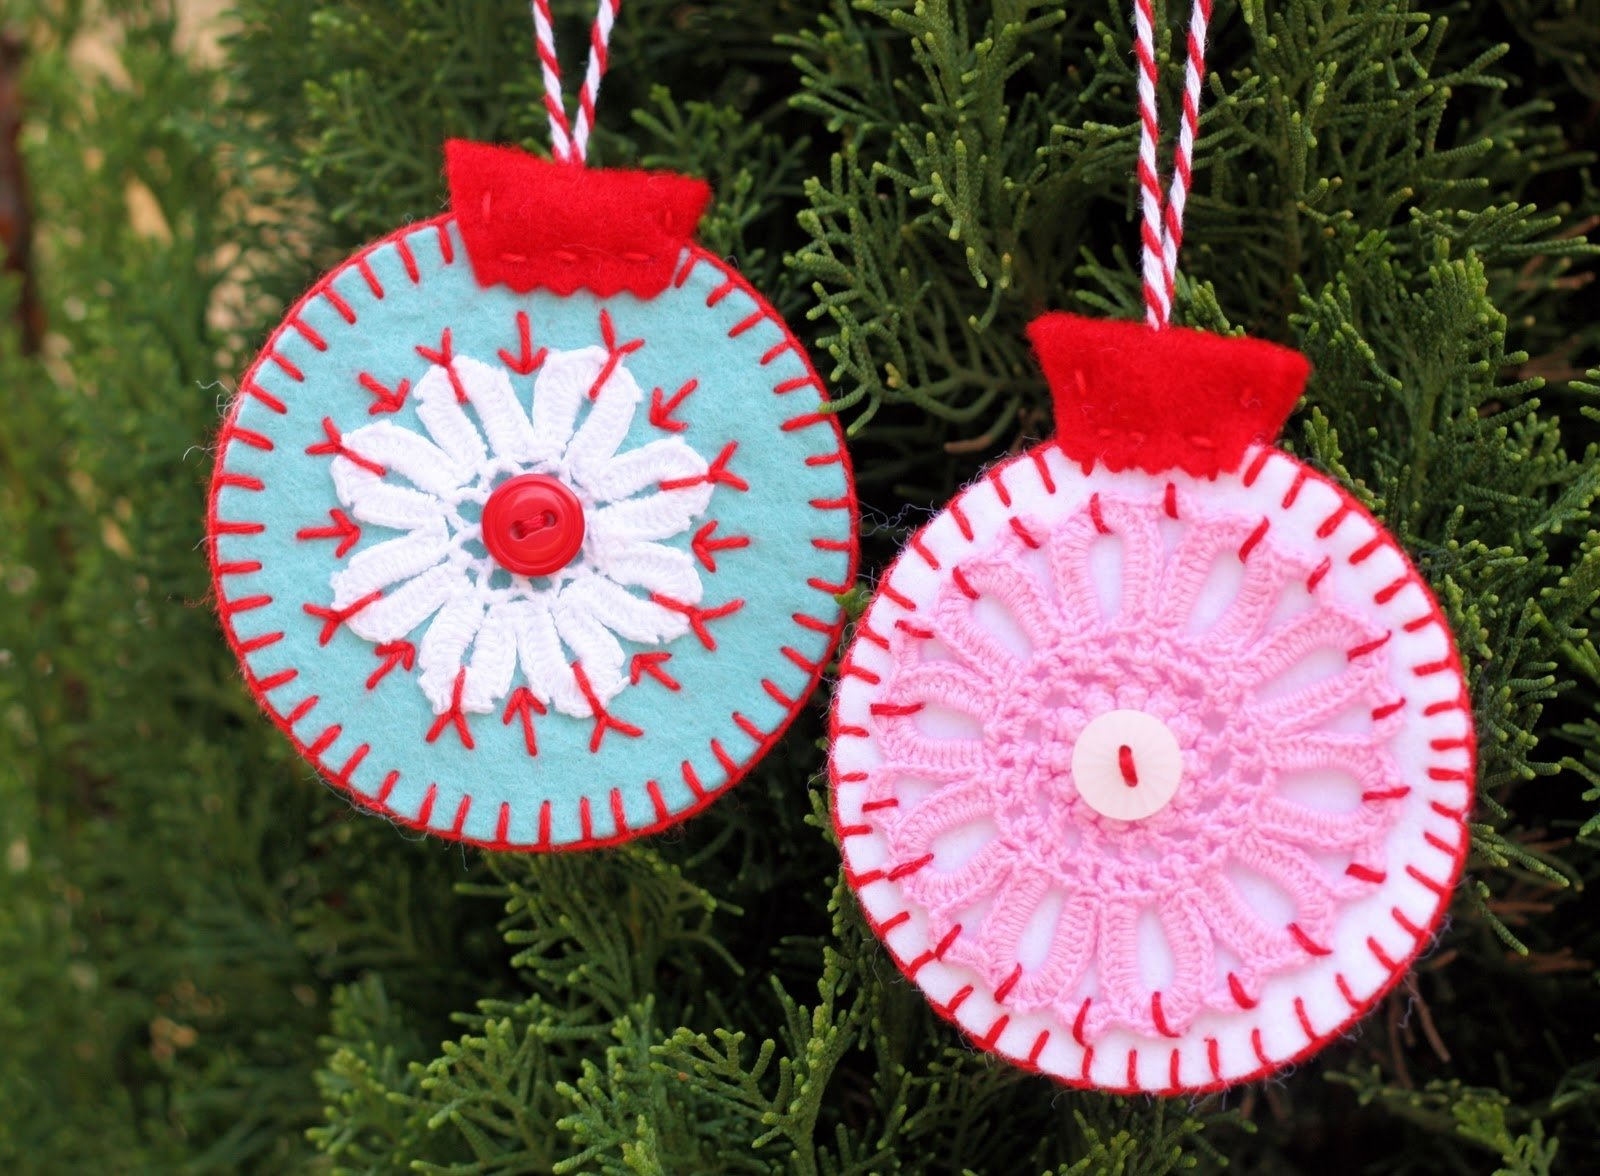 10 Most Recommended Homemade Ornament Ideas For Kids homemade christmas ornaments christmas celebration all about 2020